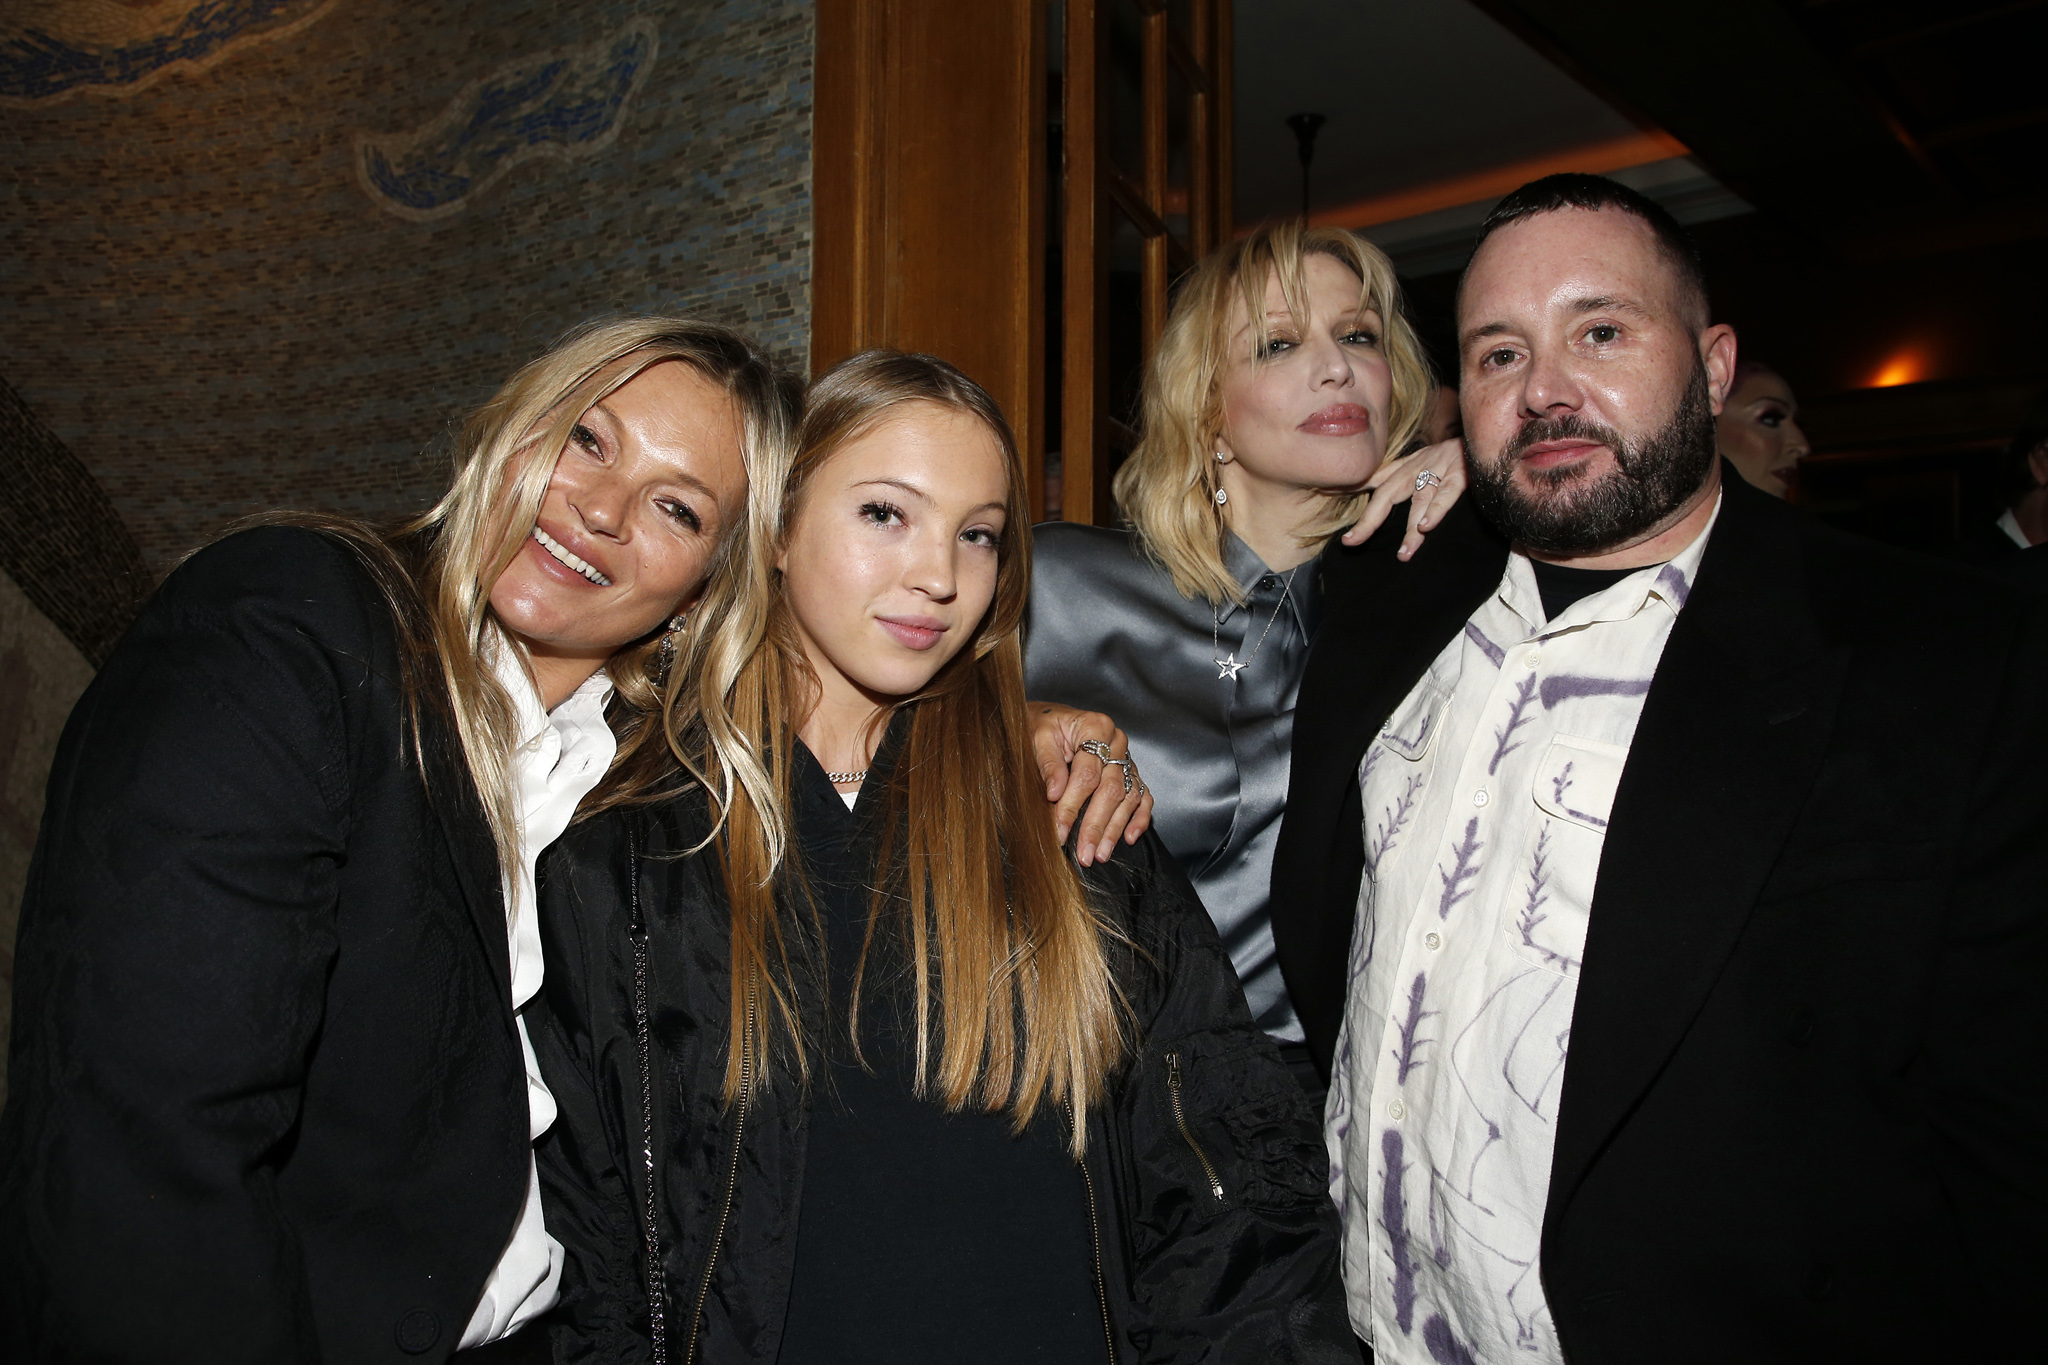 Kate Moss, Lila Grace Moss Hack, Courtney Love and Kim Jones.